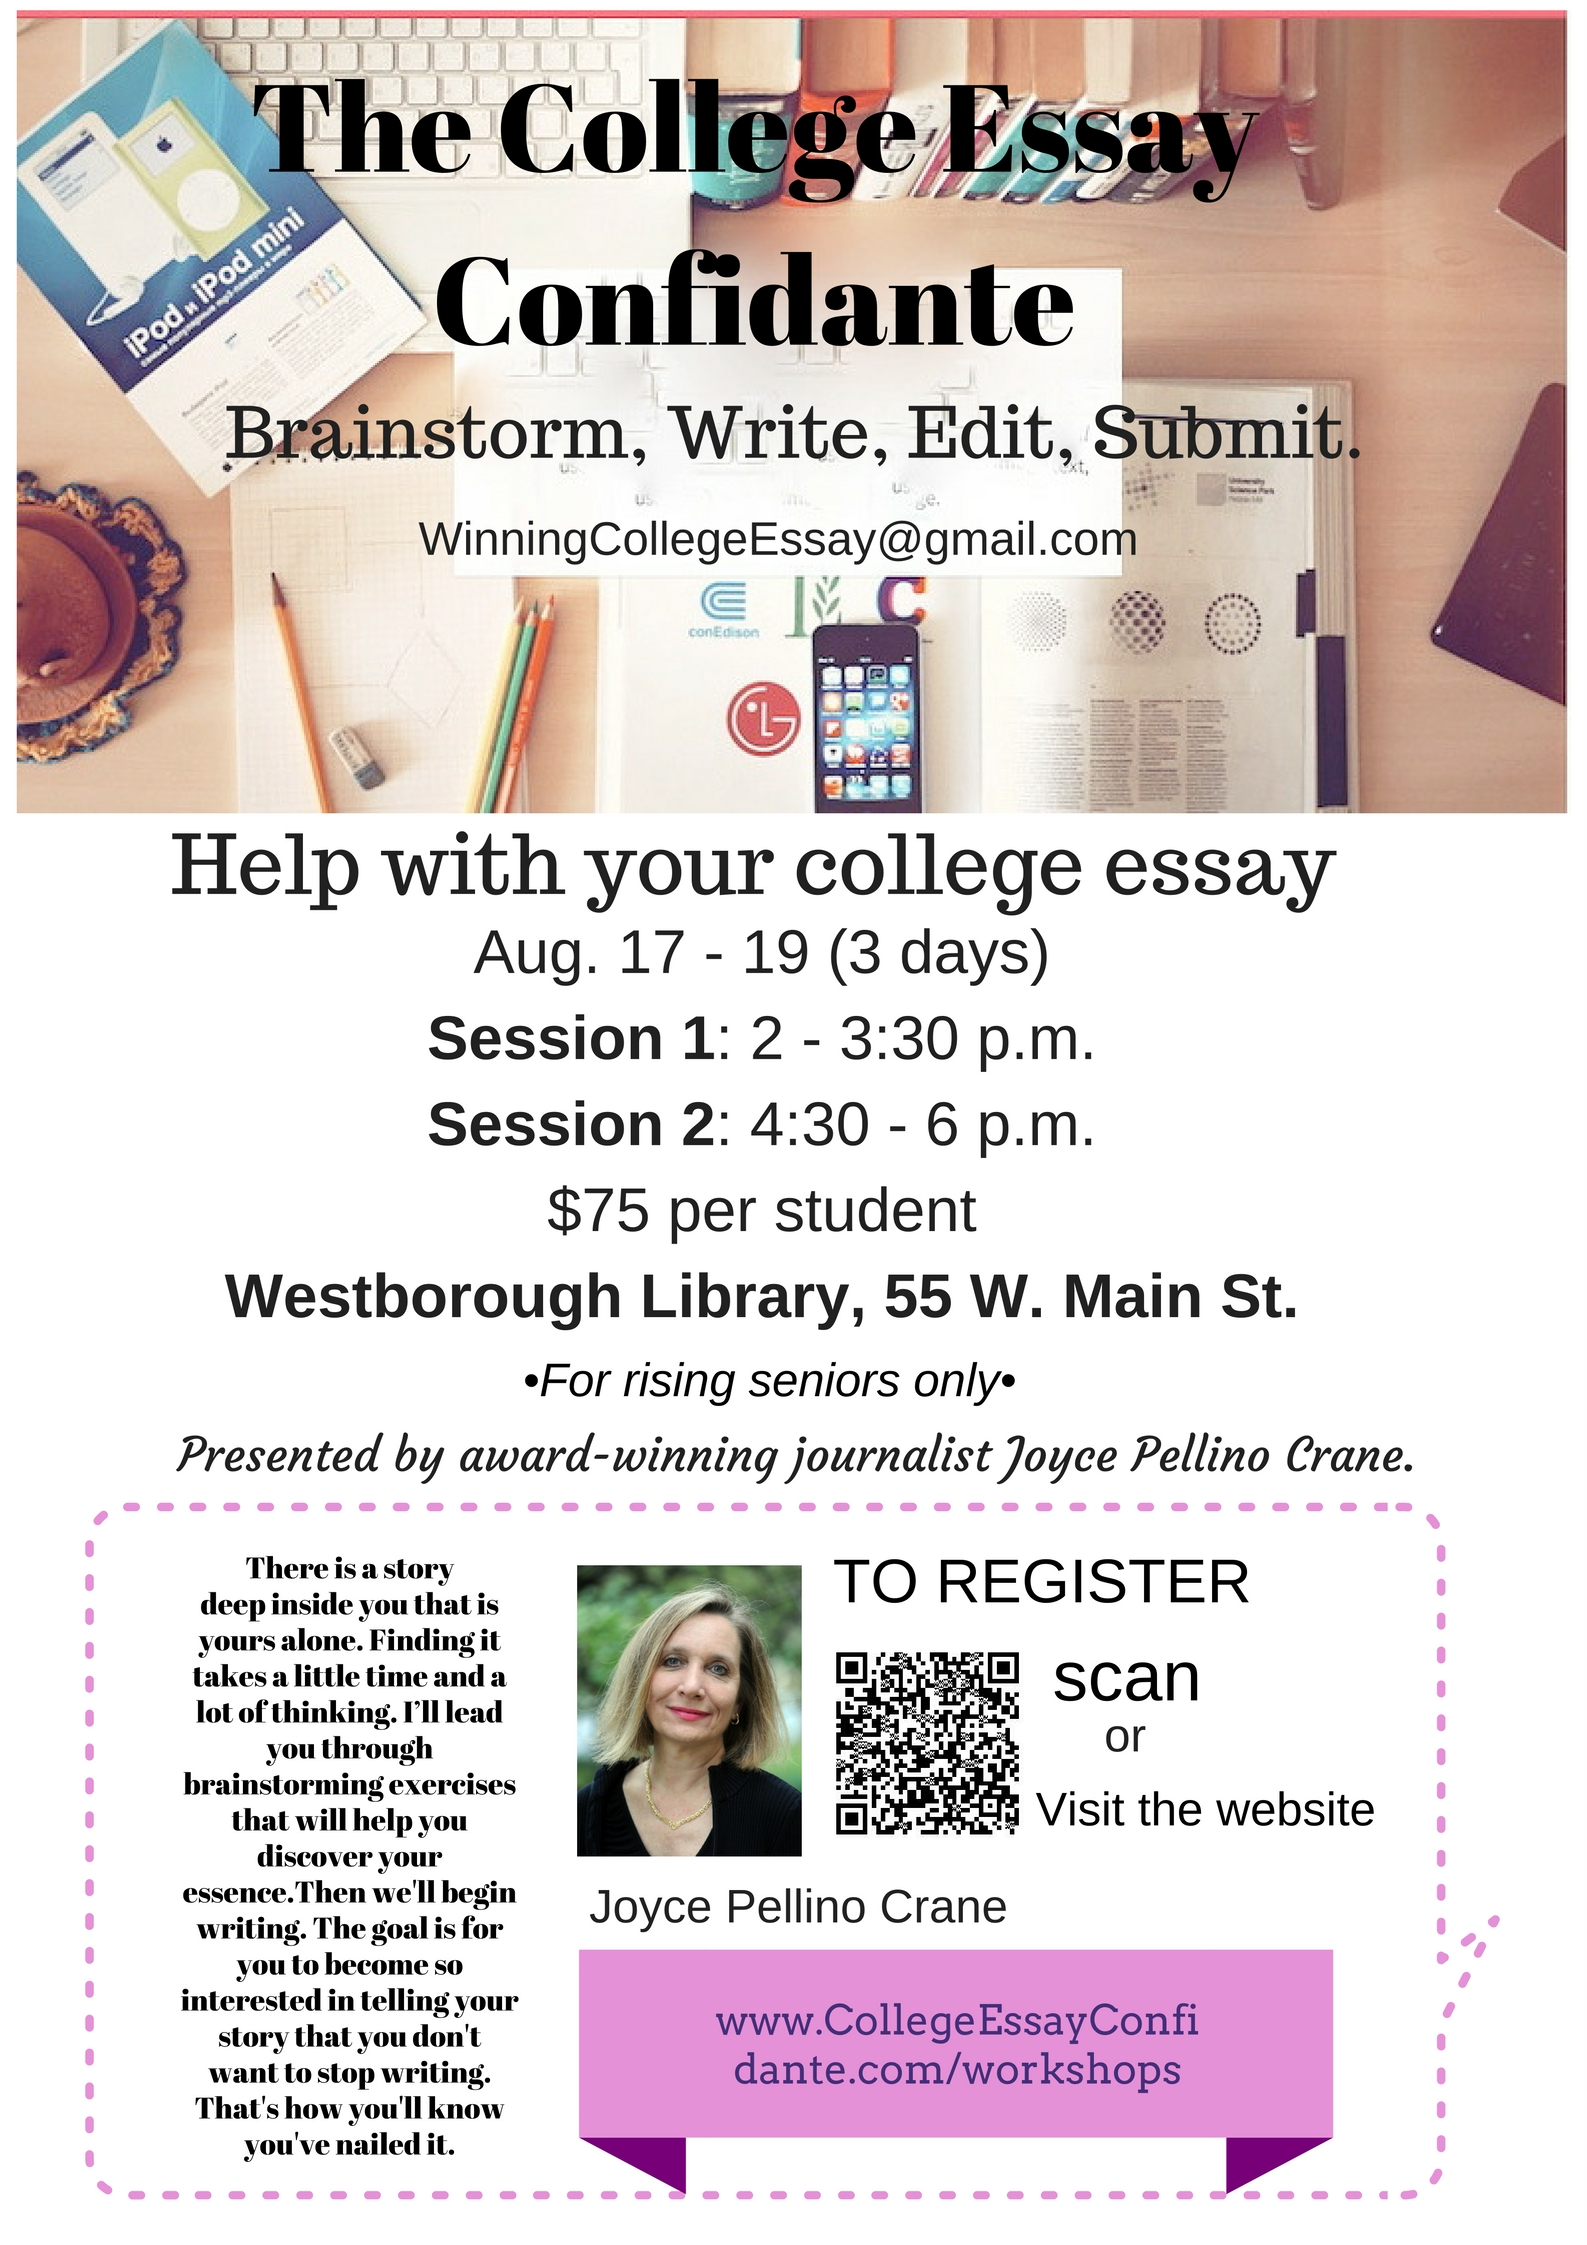 the college essay confidante page help your college poster westborough library 75